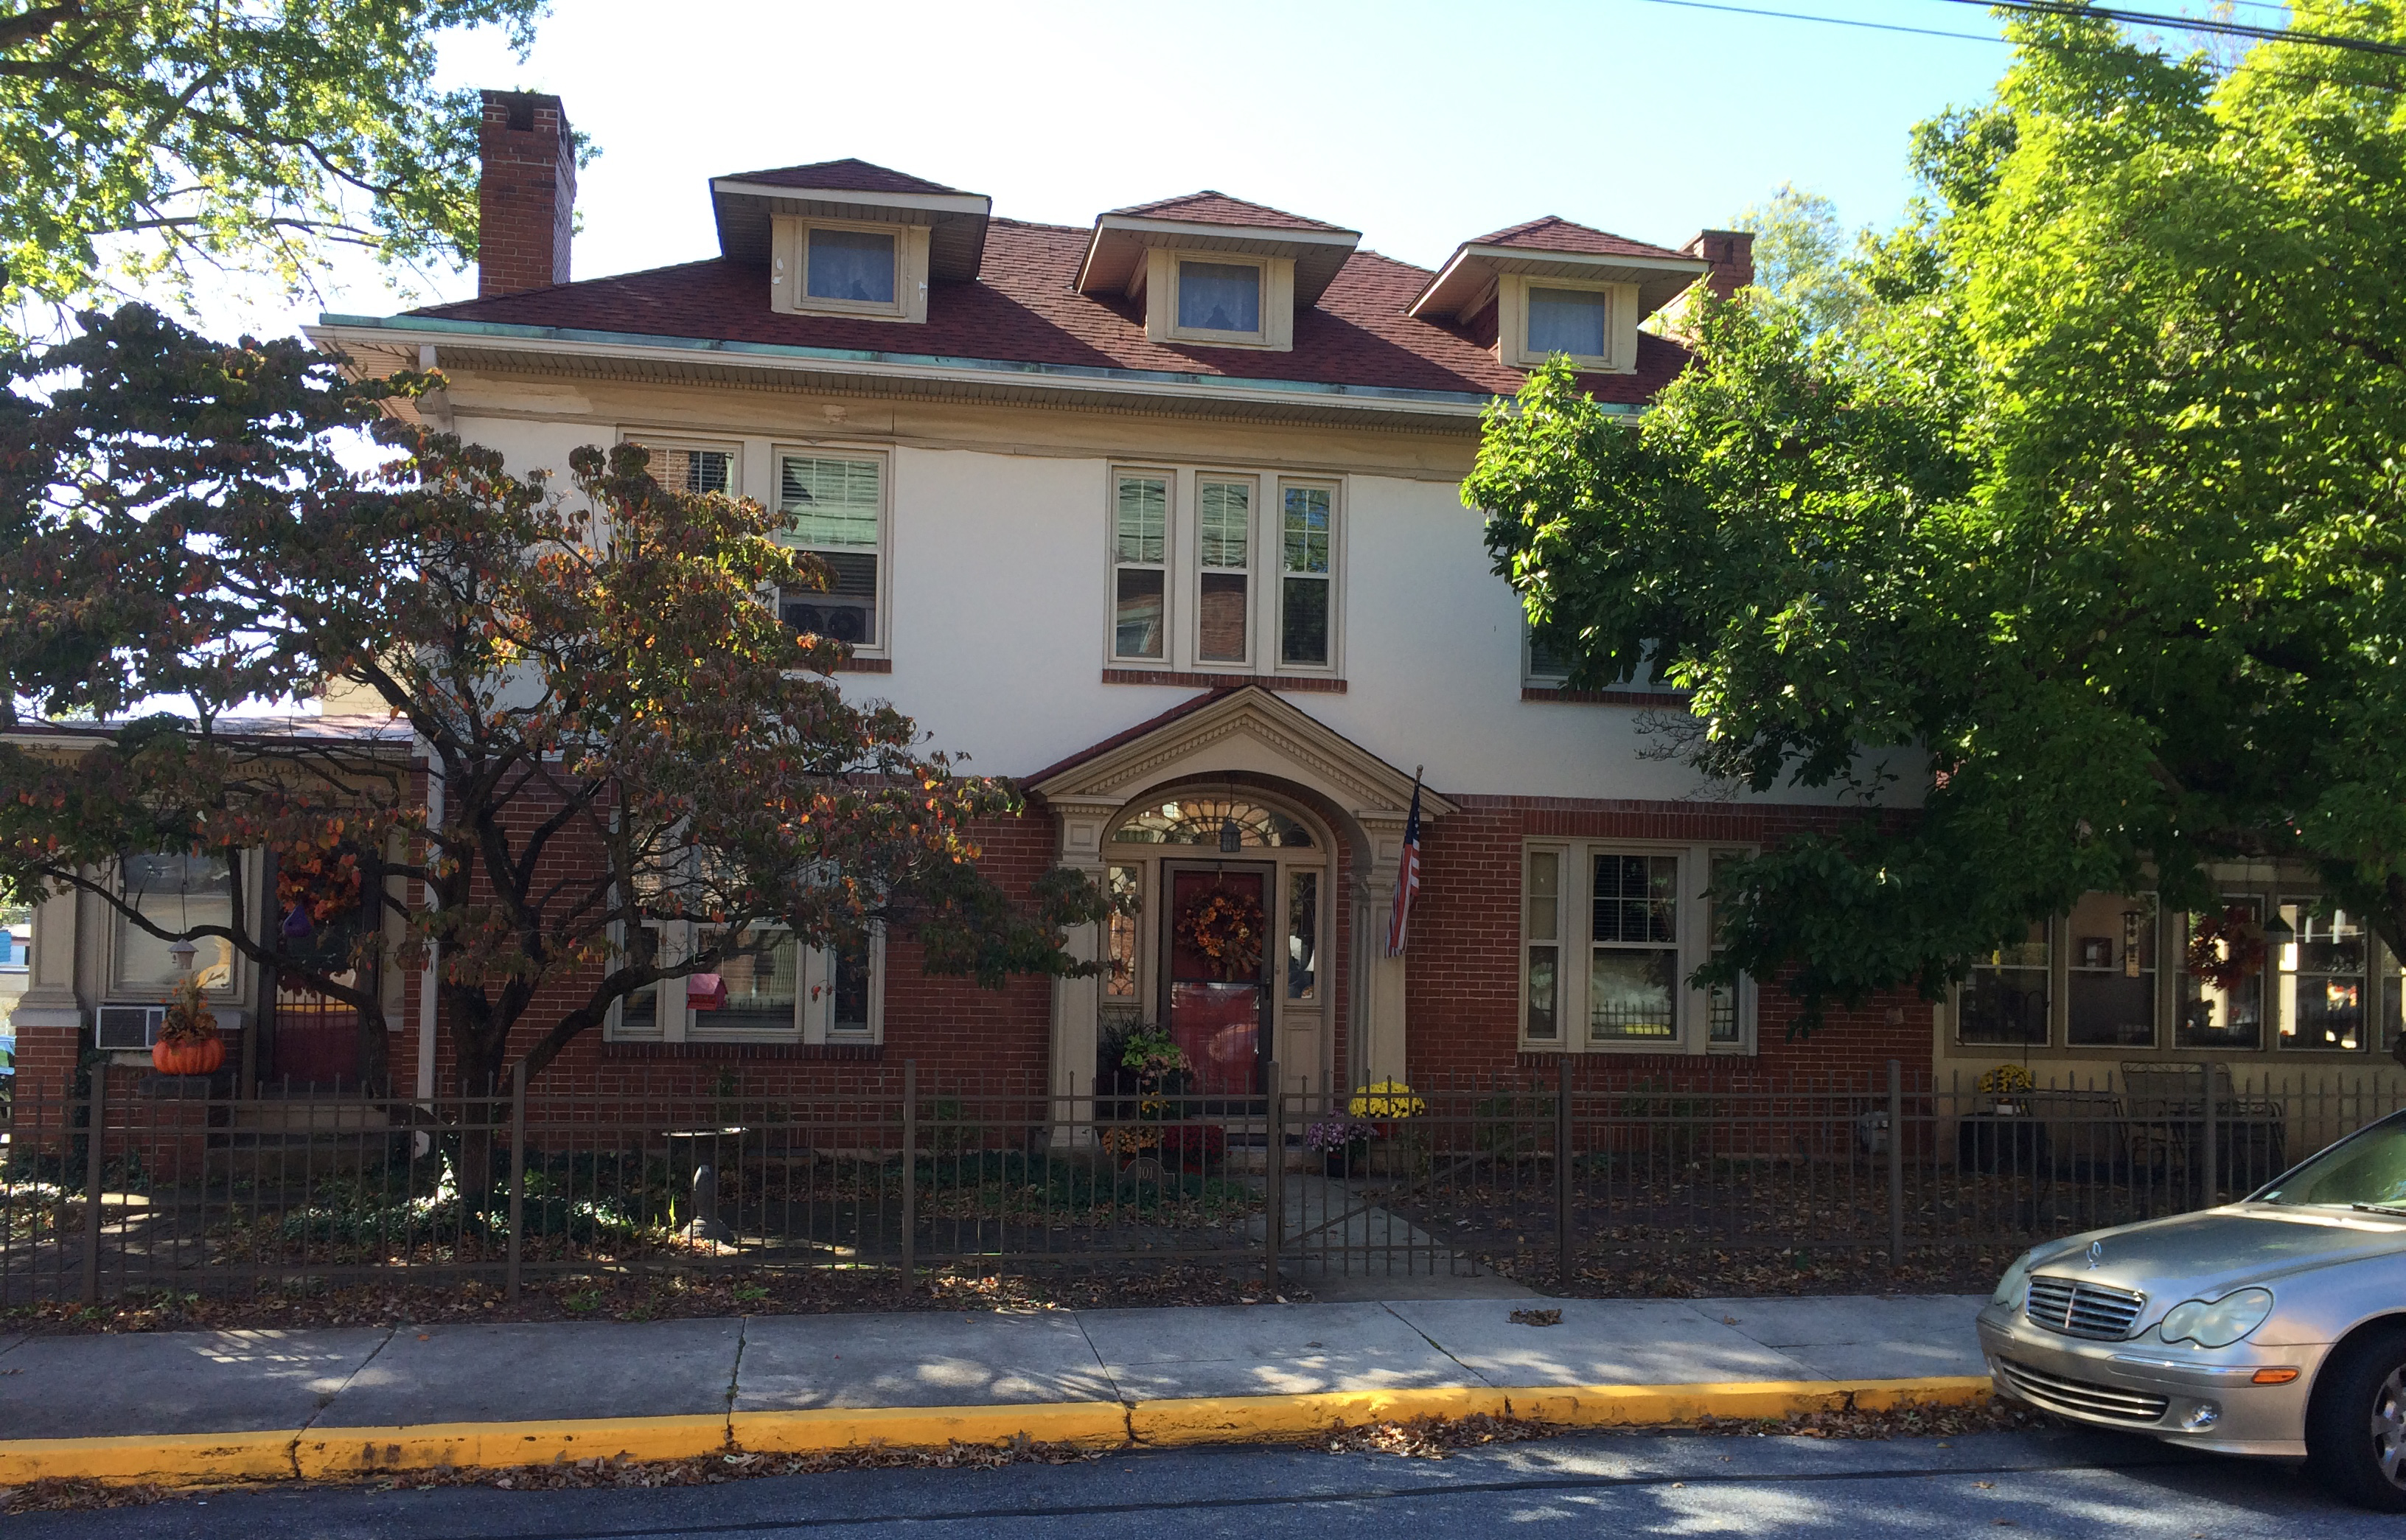 Historic Middletown Homes - Middletown Public Library